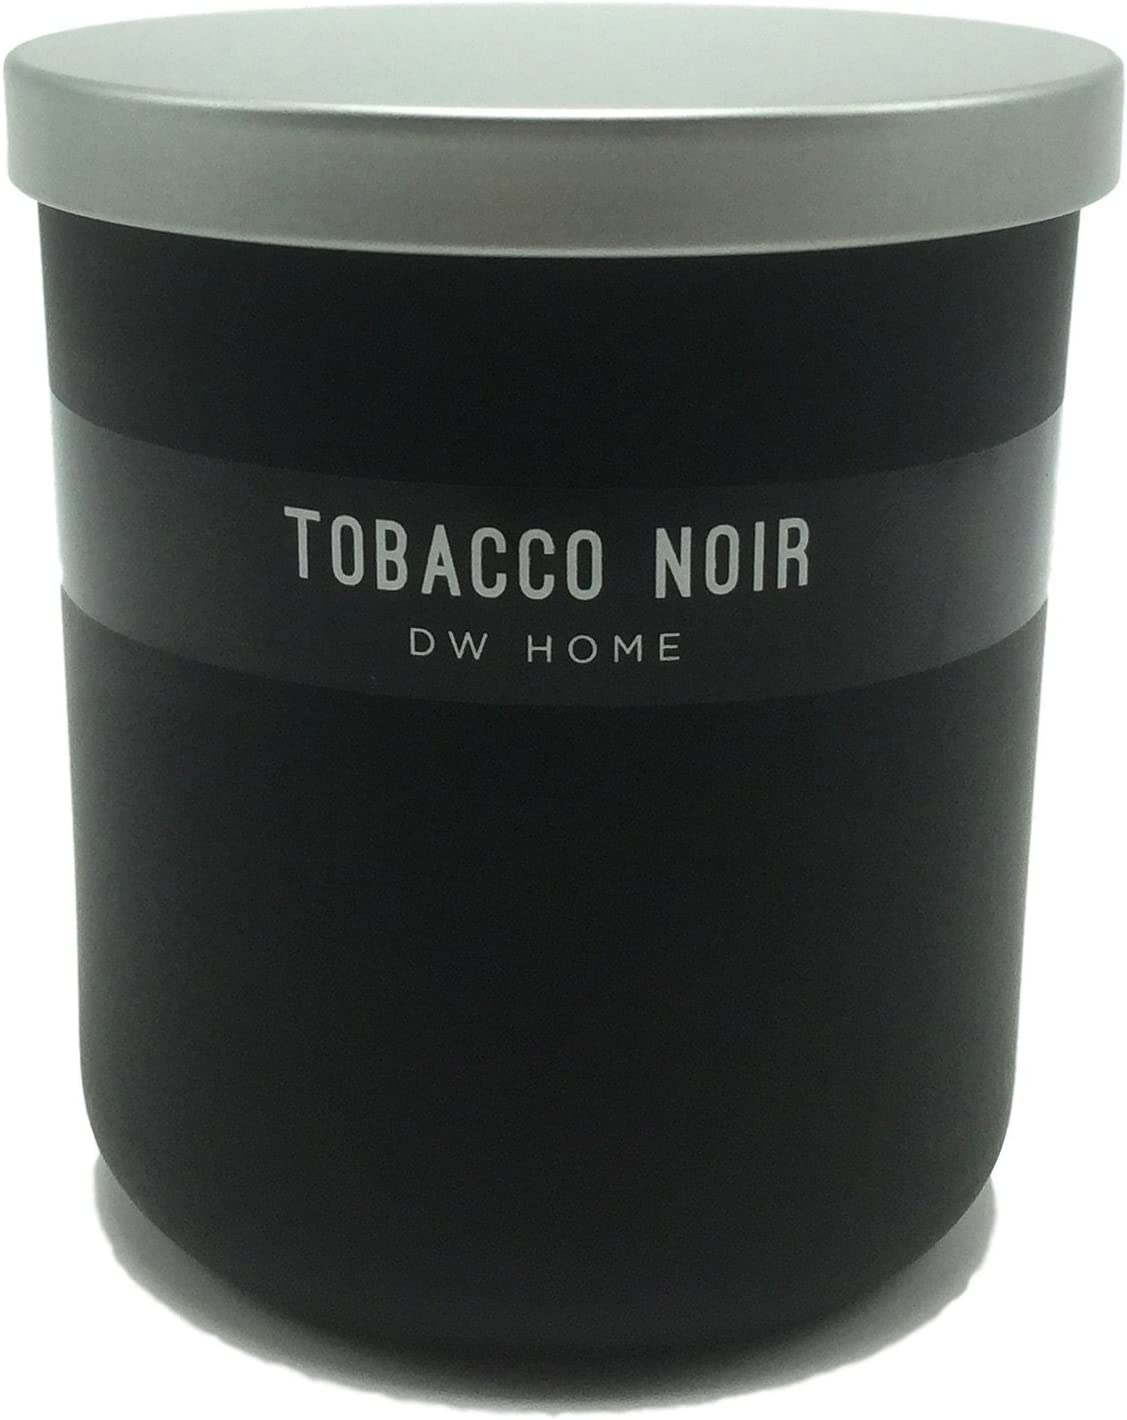 DW Home Tobacco Noir Scented Candle Hand Poured with a Single Wick in Glass Jar 9oz.